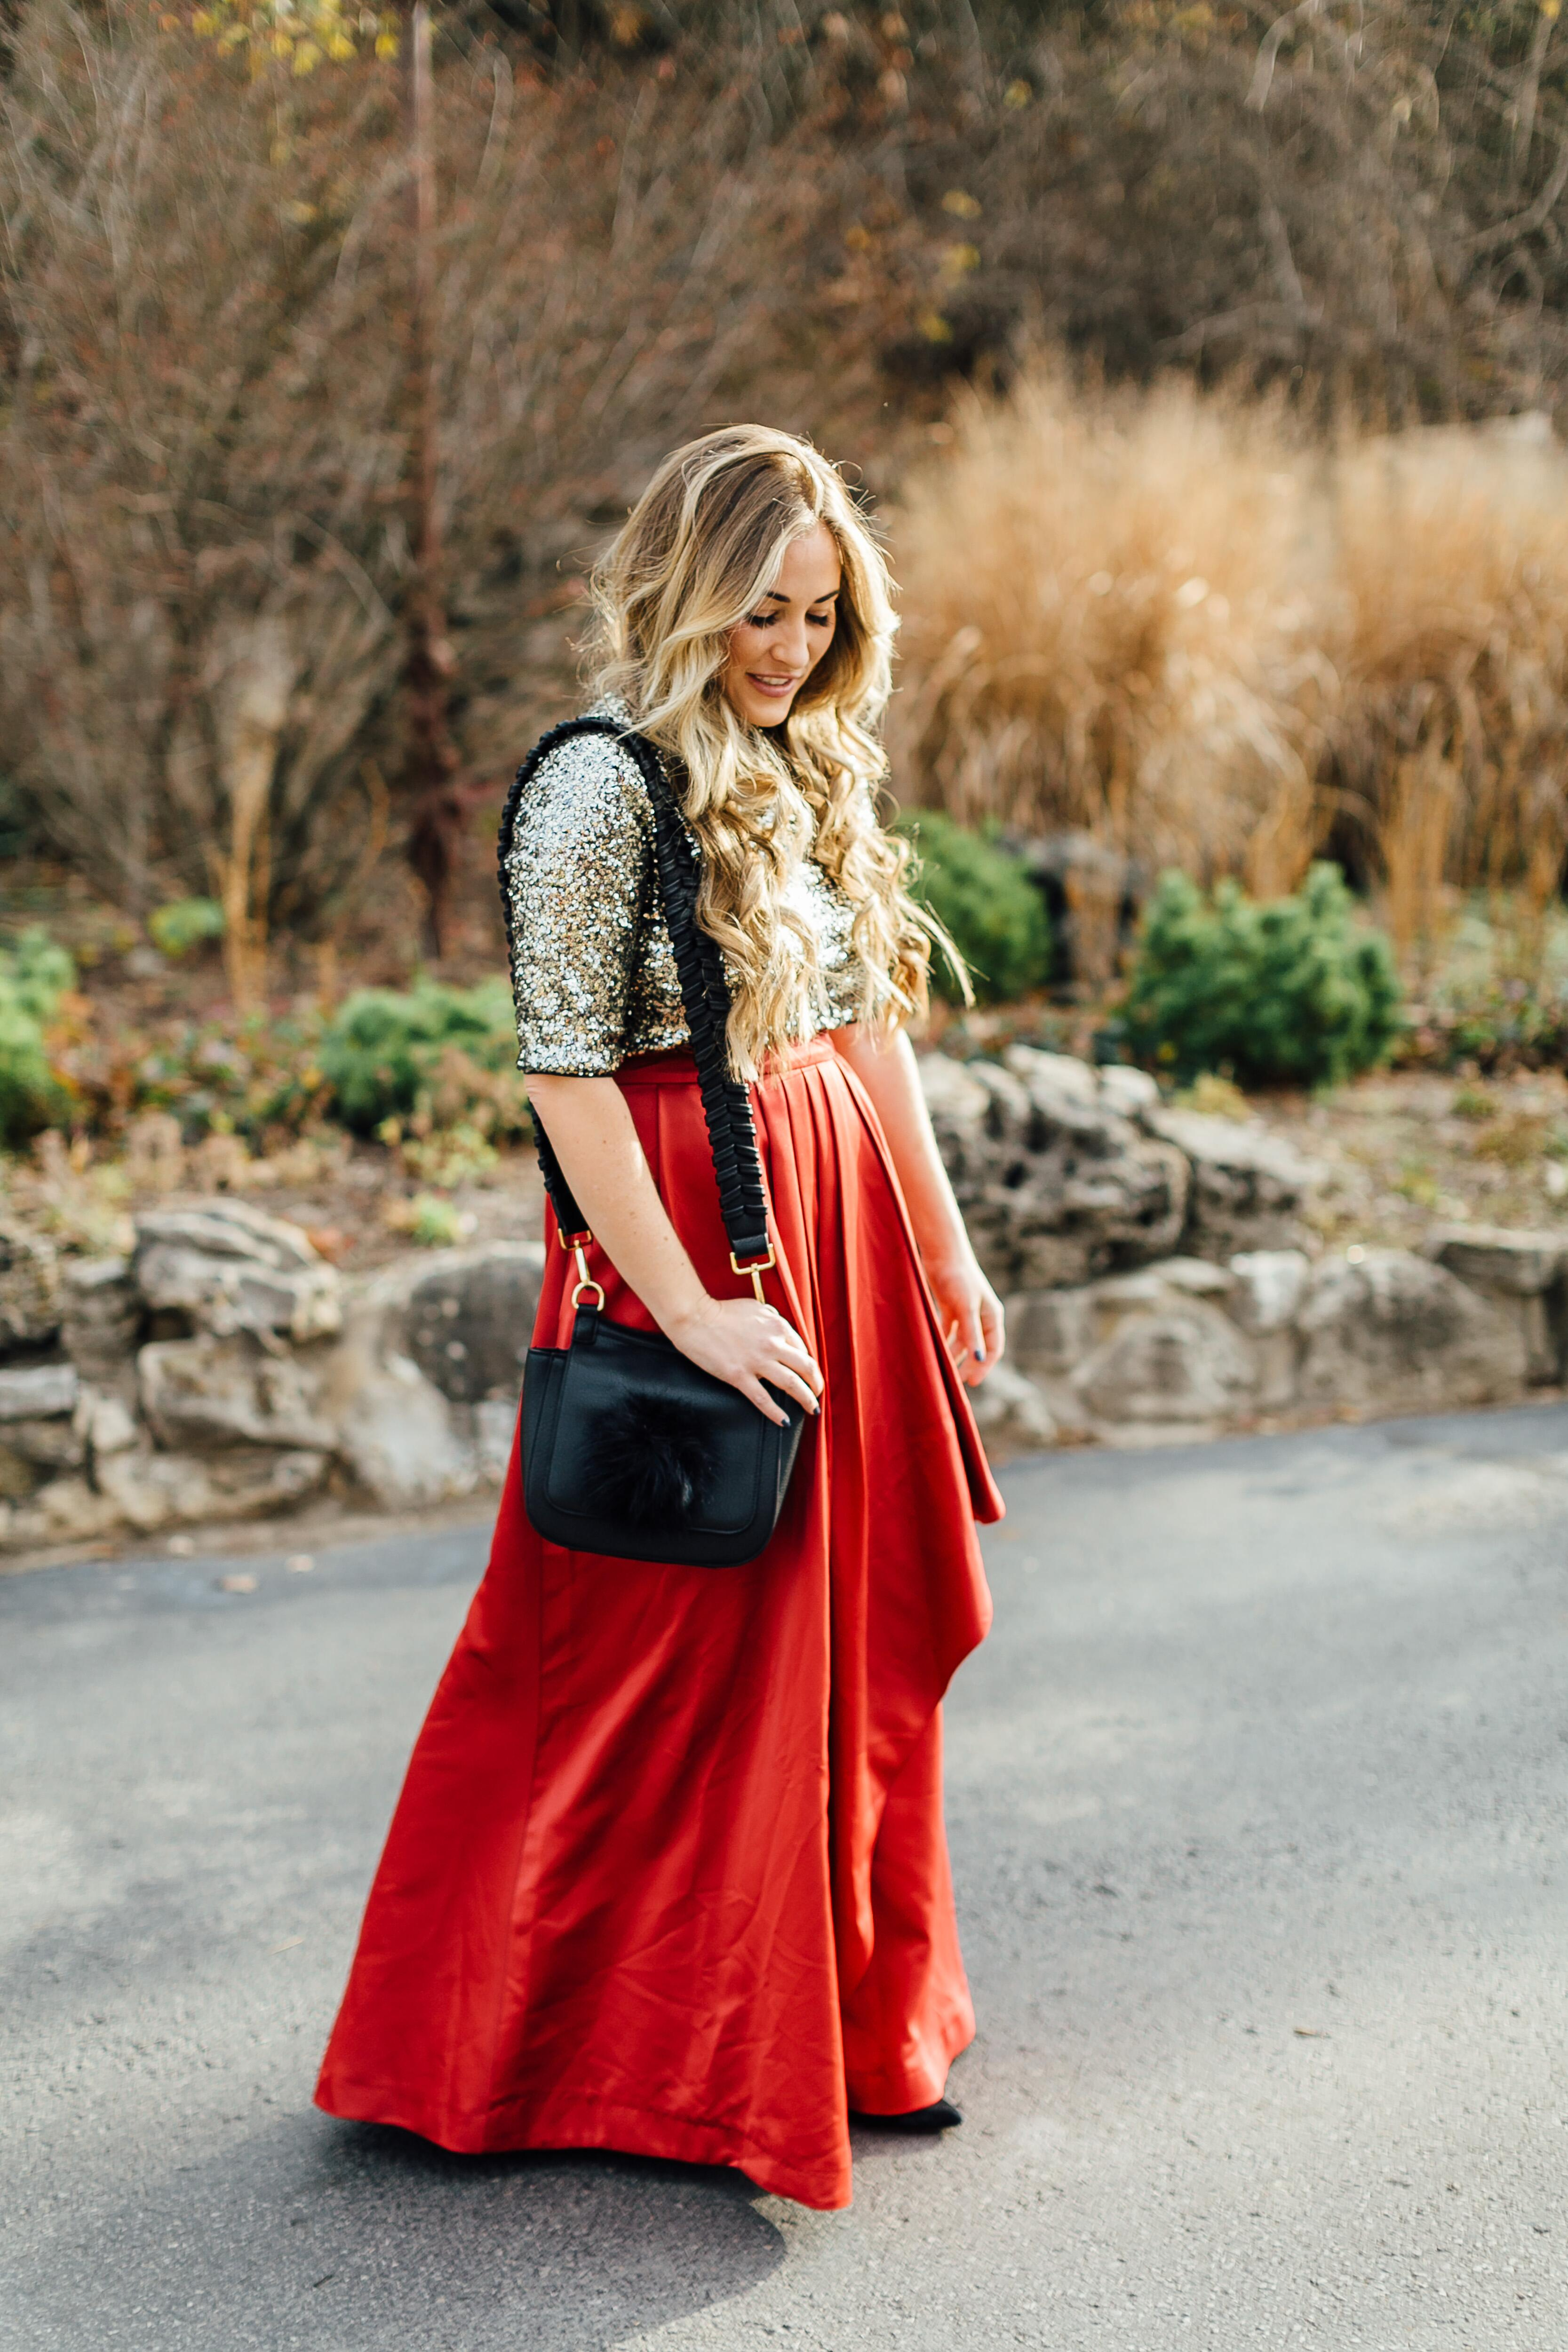 Glitz and Glam by East Memphis fashion blogger Walking in Memphis in High Heels